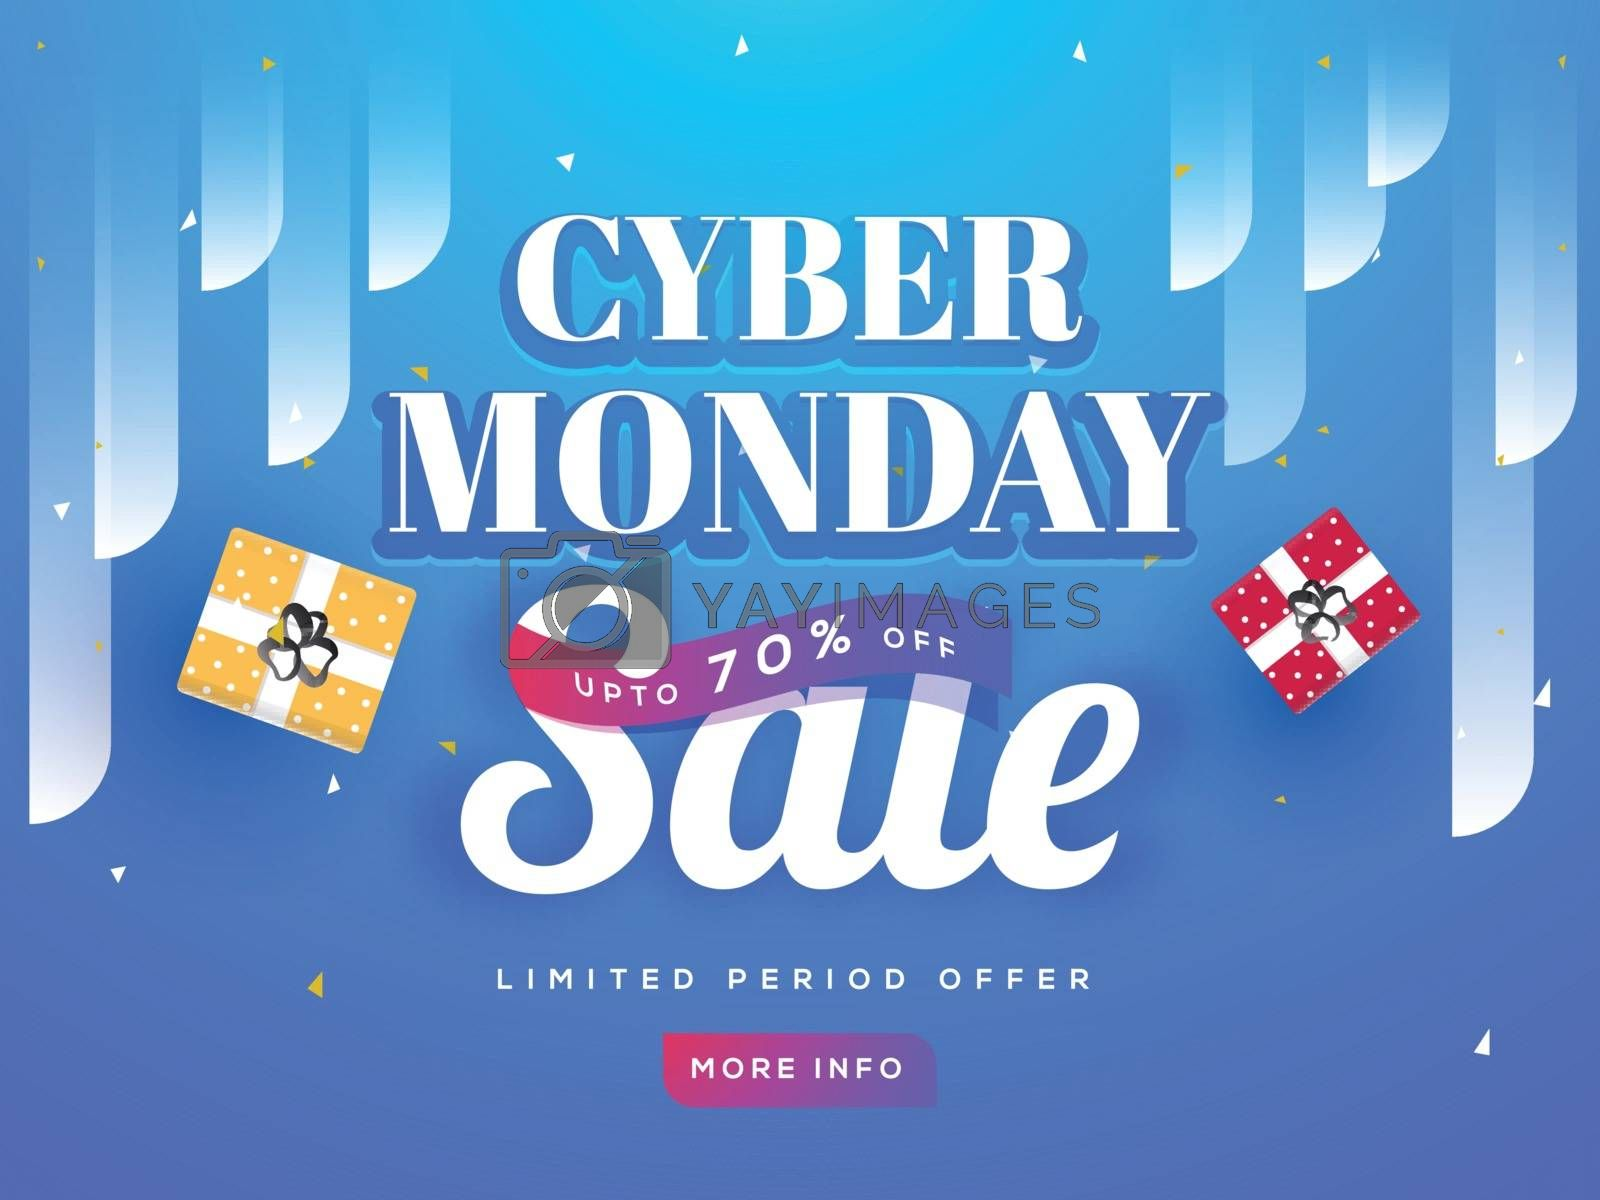 Cyber Monday Sale text on shiny blue background with 70% discount offer. Advertising poster or template design.